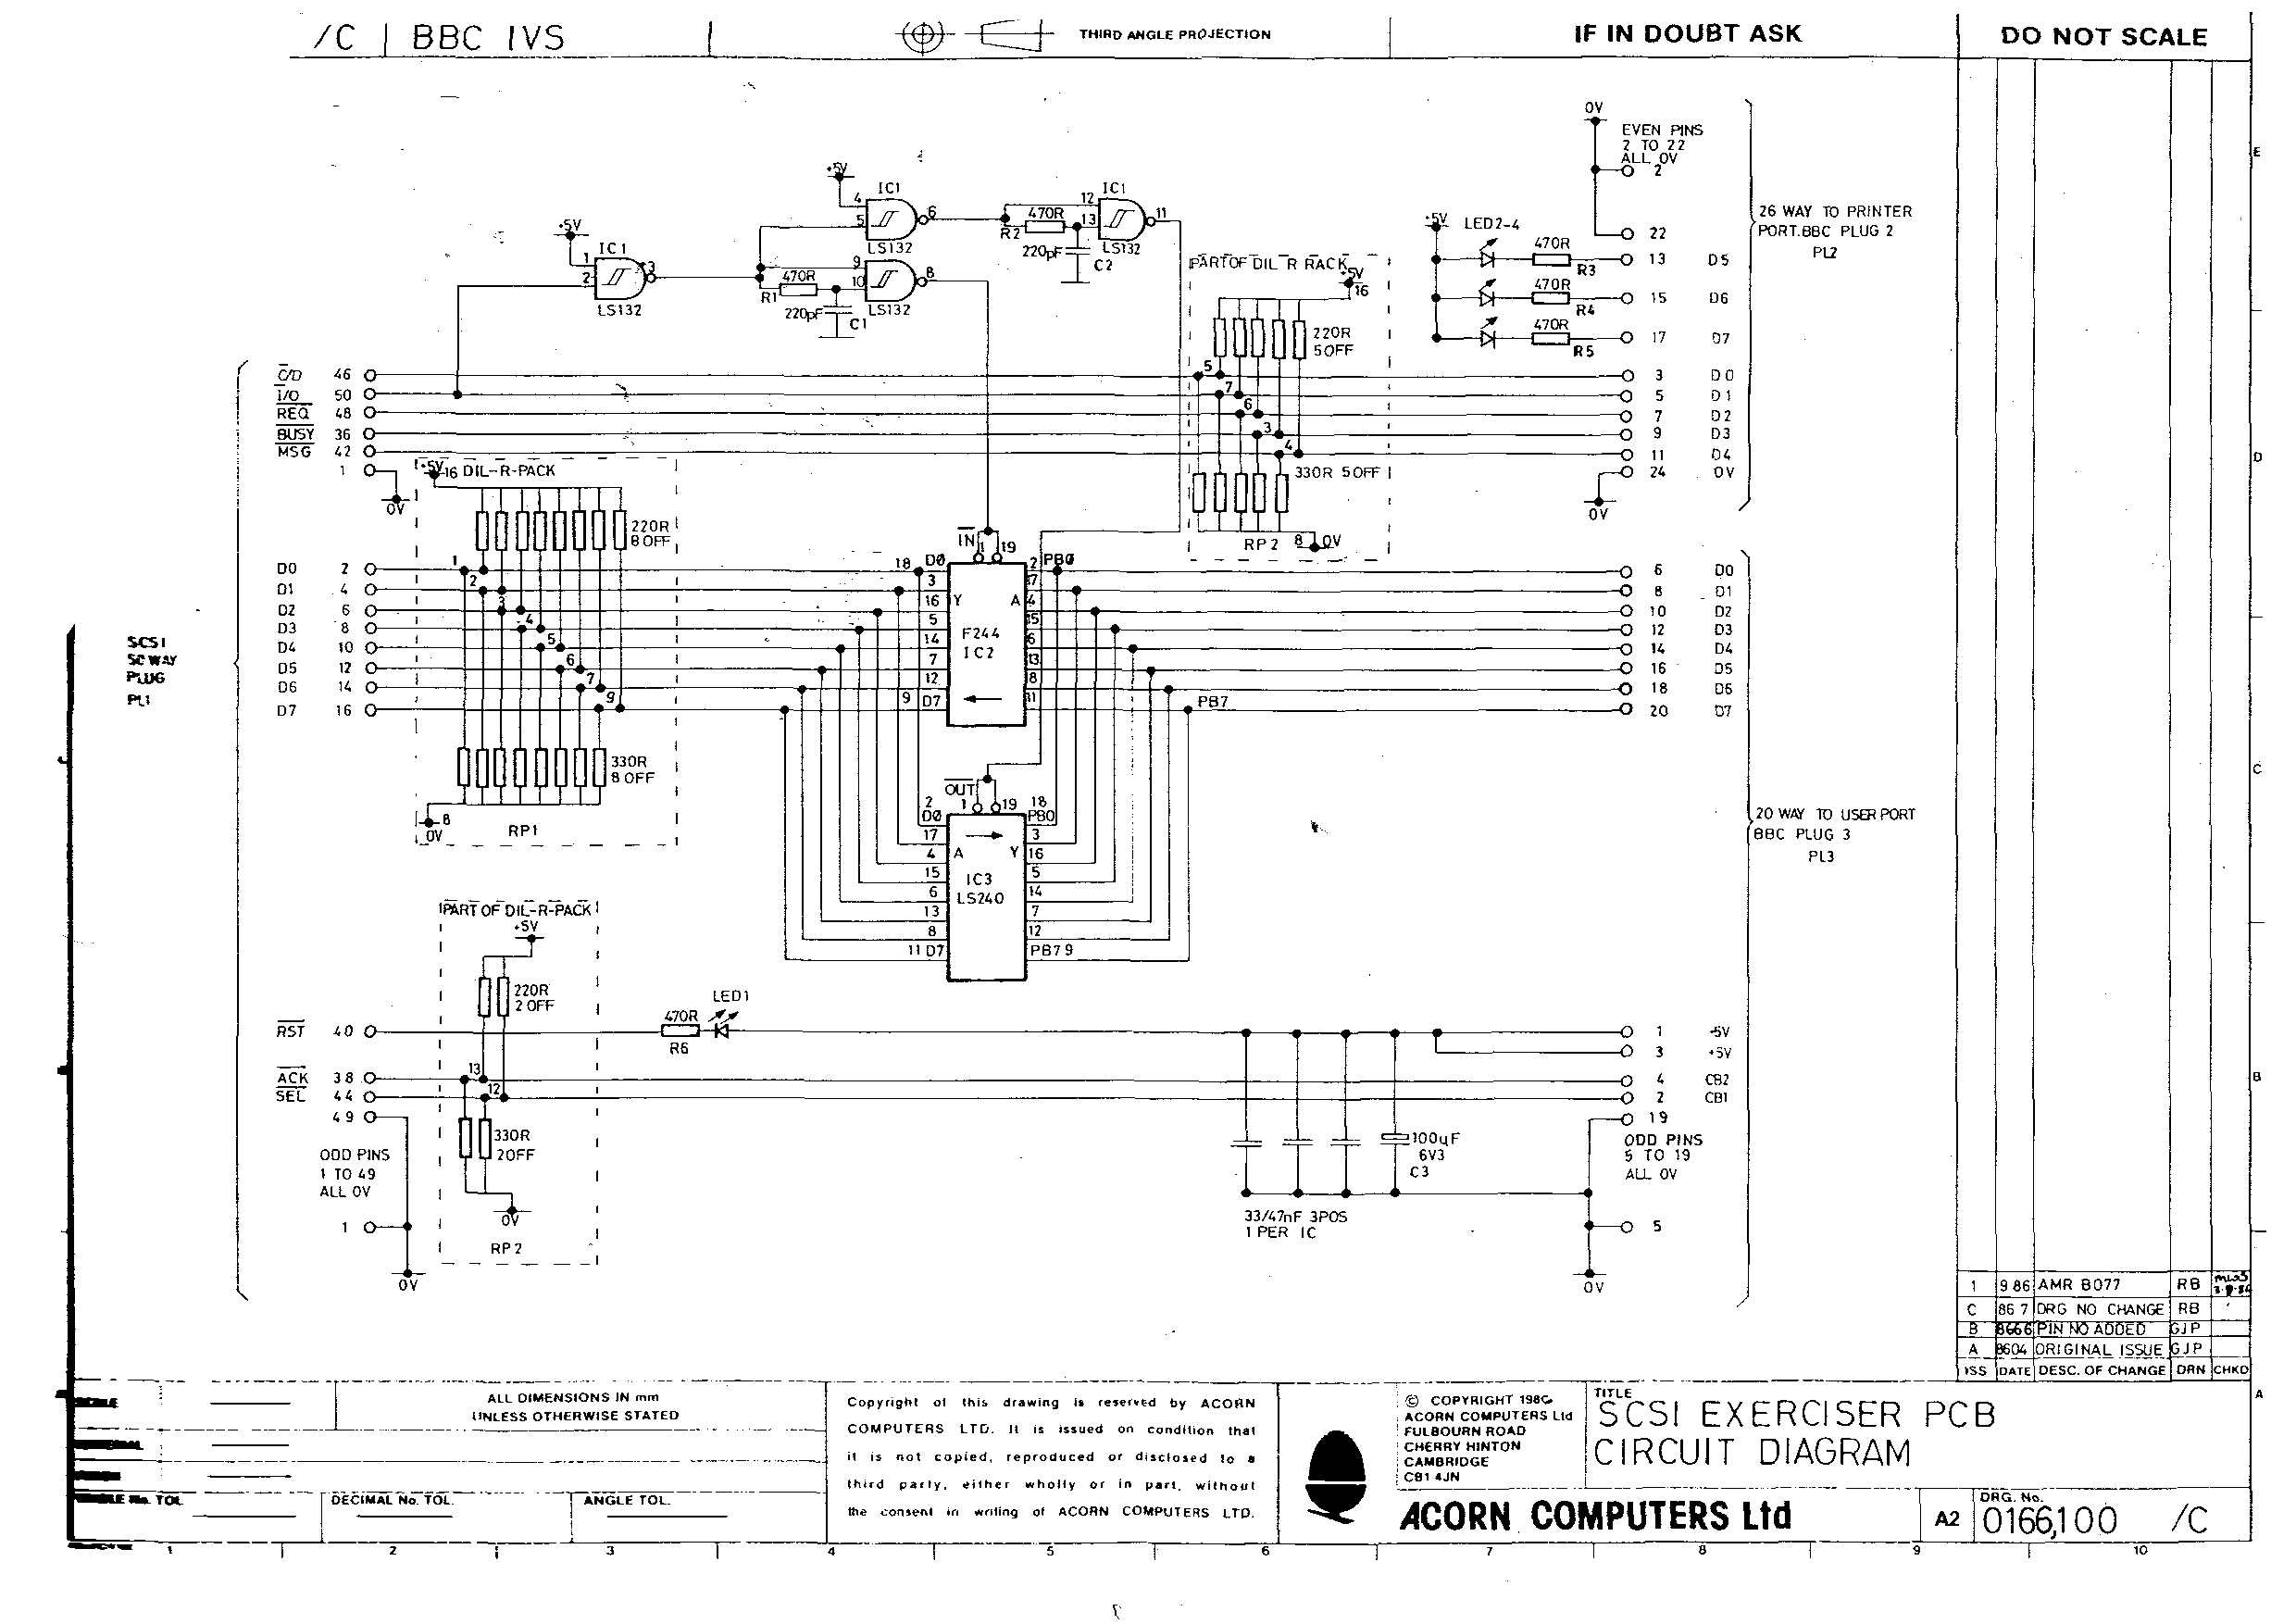 Db9 To Db25 Wiring Diagram together with 1458928 likewise Is There A Set Of Standard Symbols For Connectors Wires Protocols further As cable505 additionally Free Download Flat Right Angle Patch Cable Programs. on rj45 cable connector drawing